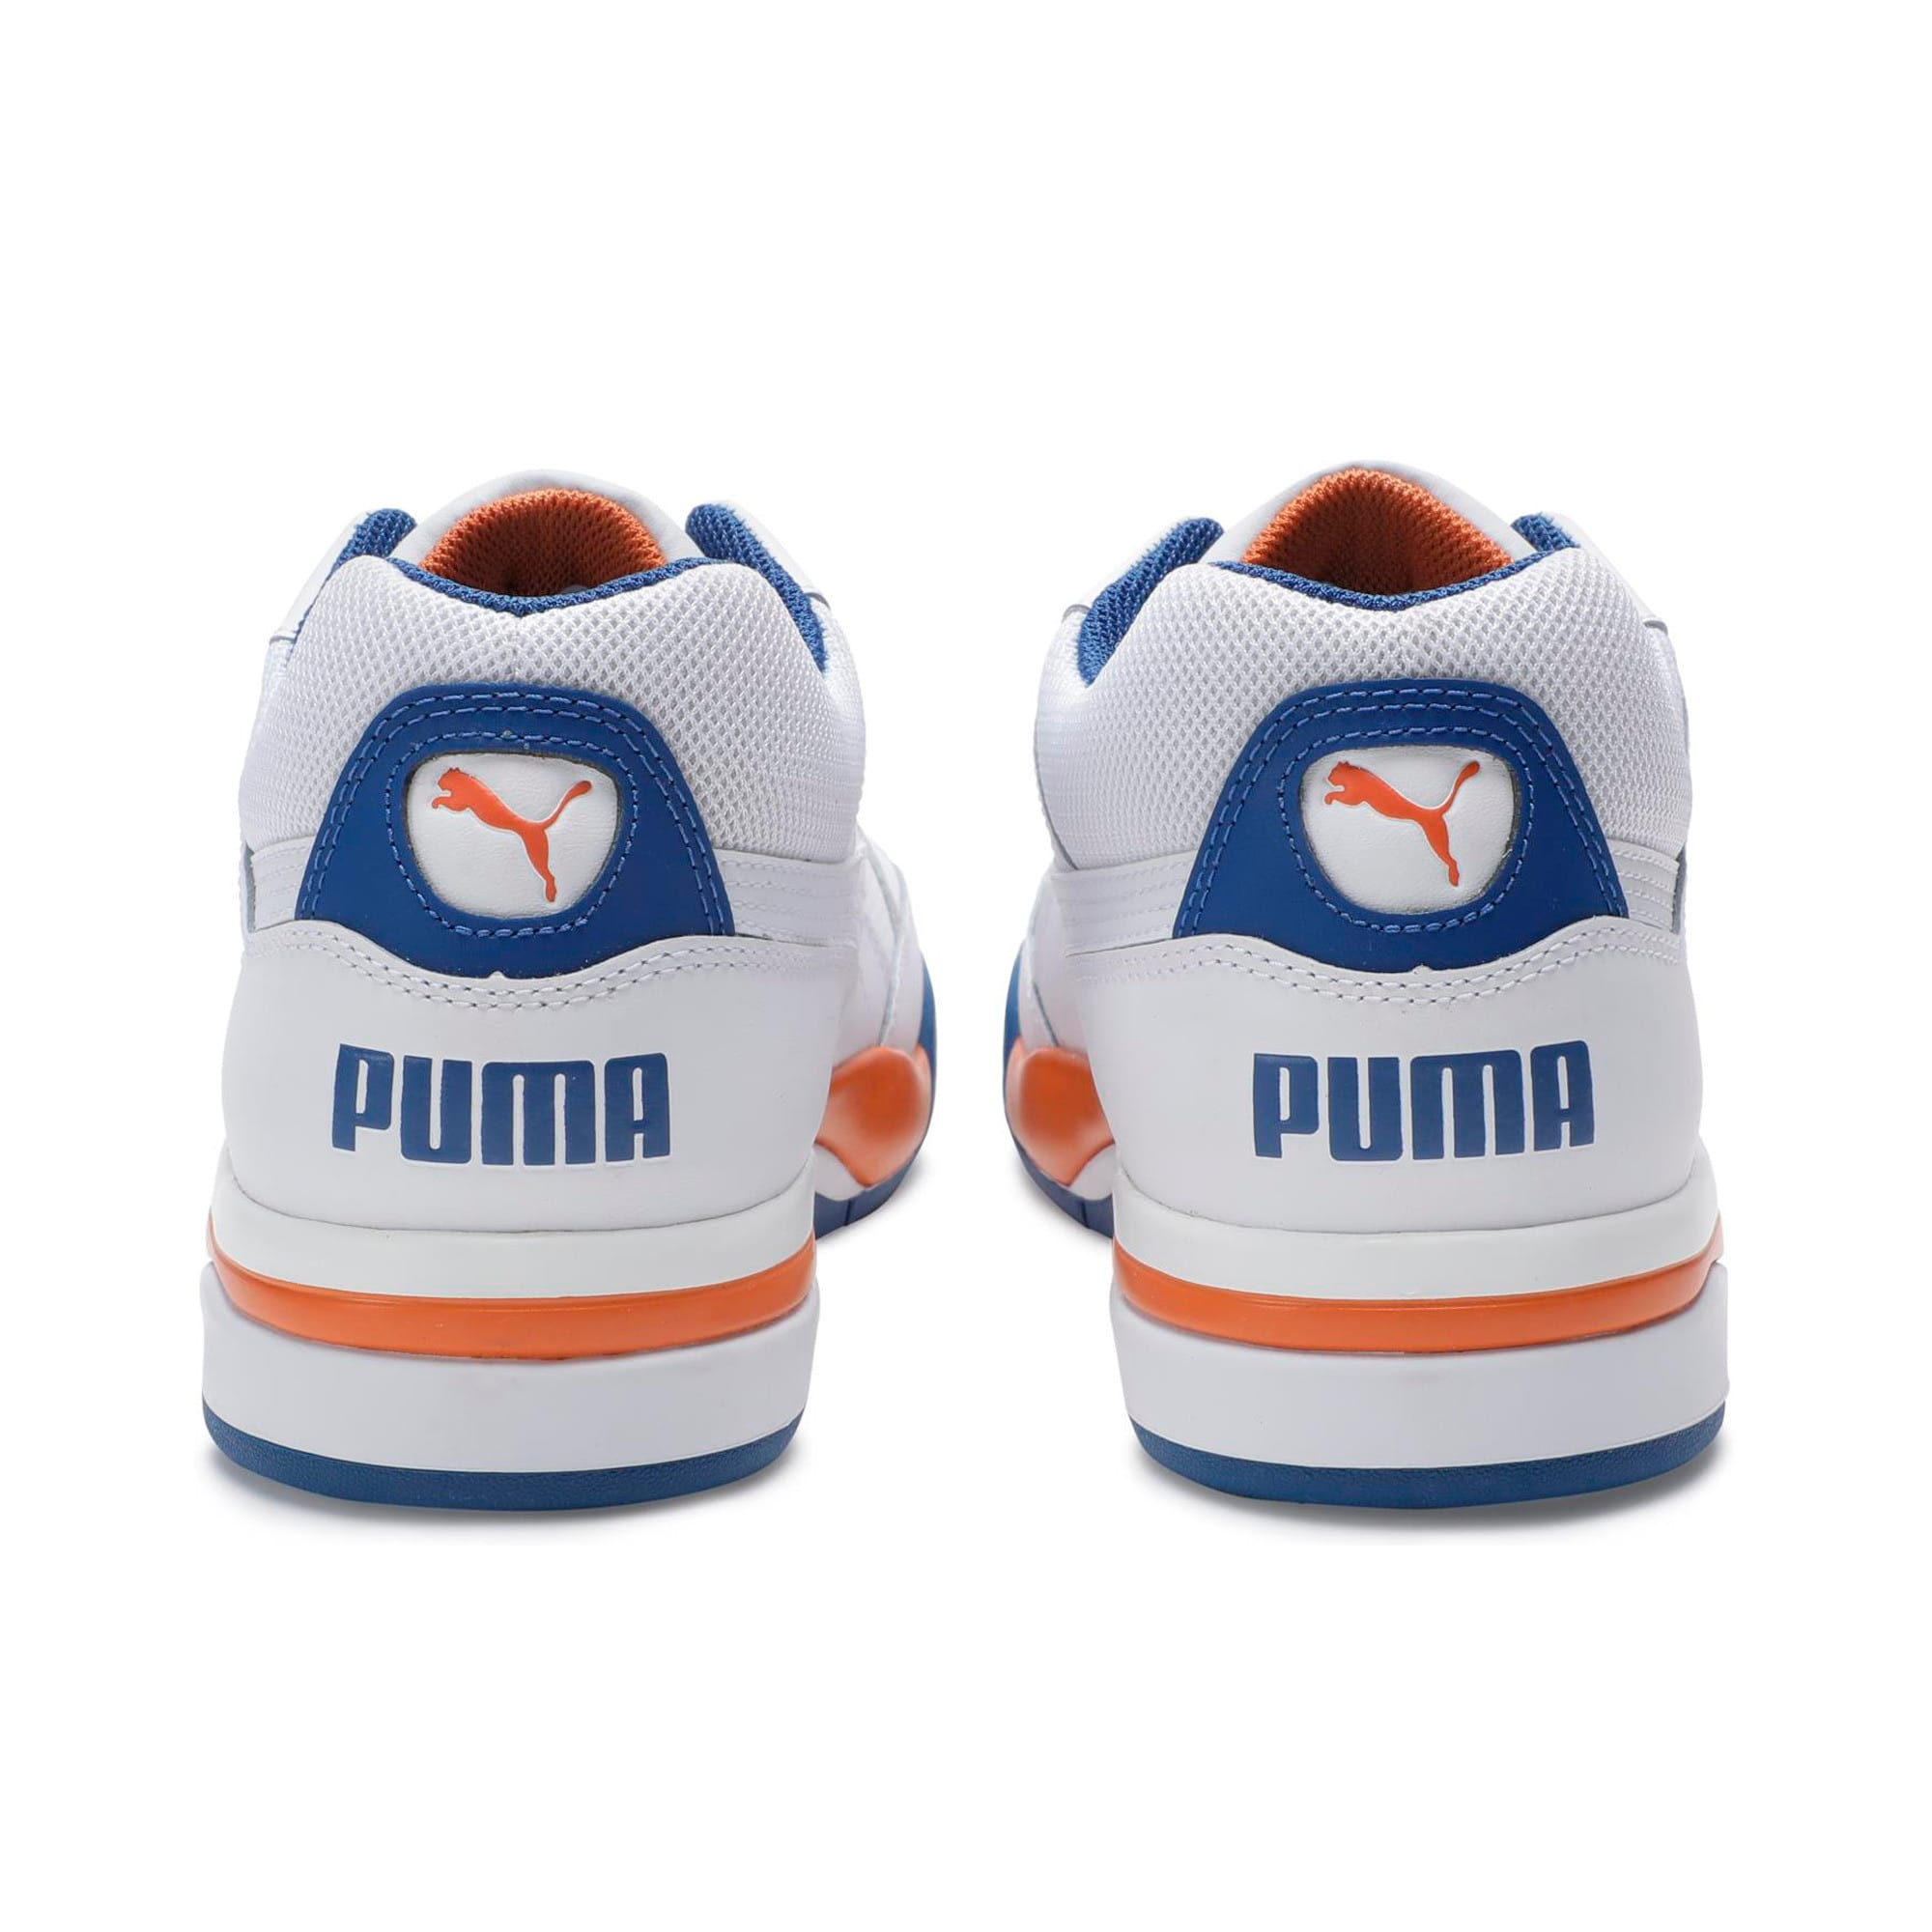 Thumbnail 2 of Palace Guard Men's Basketball Trainers, P White-Jaffa Orange-G Blue, medium-IND